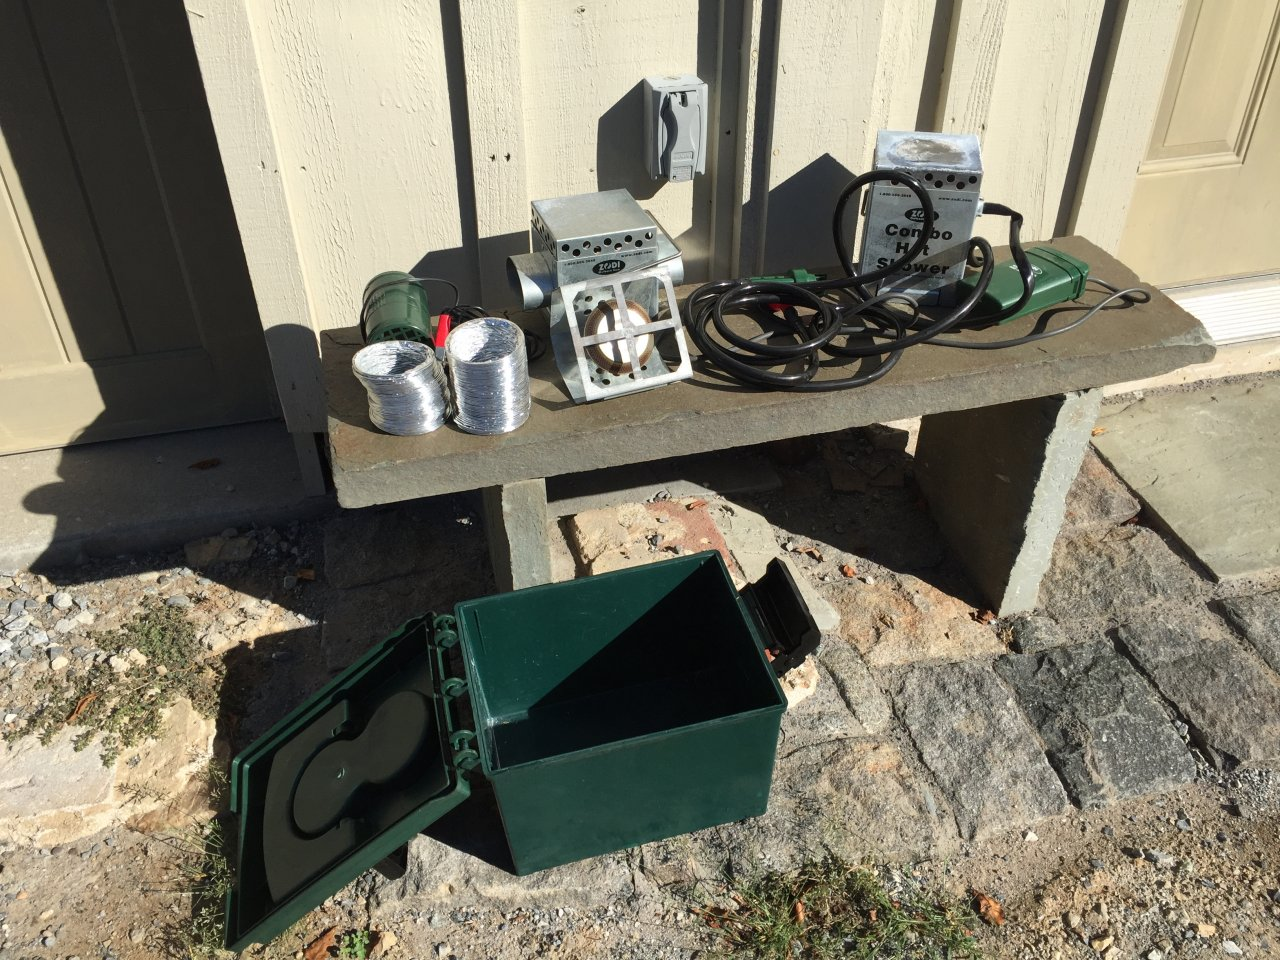 For Sale Zodi Camp Hot Shower Amp Hot Vent Tent Heater